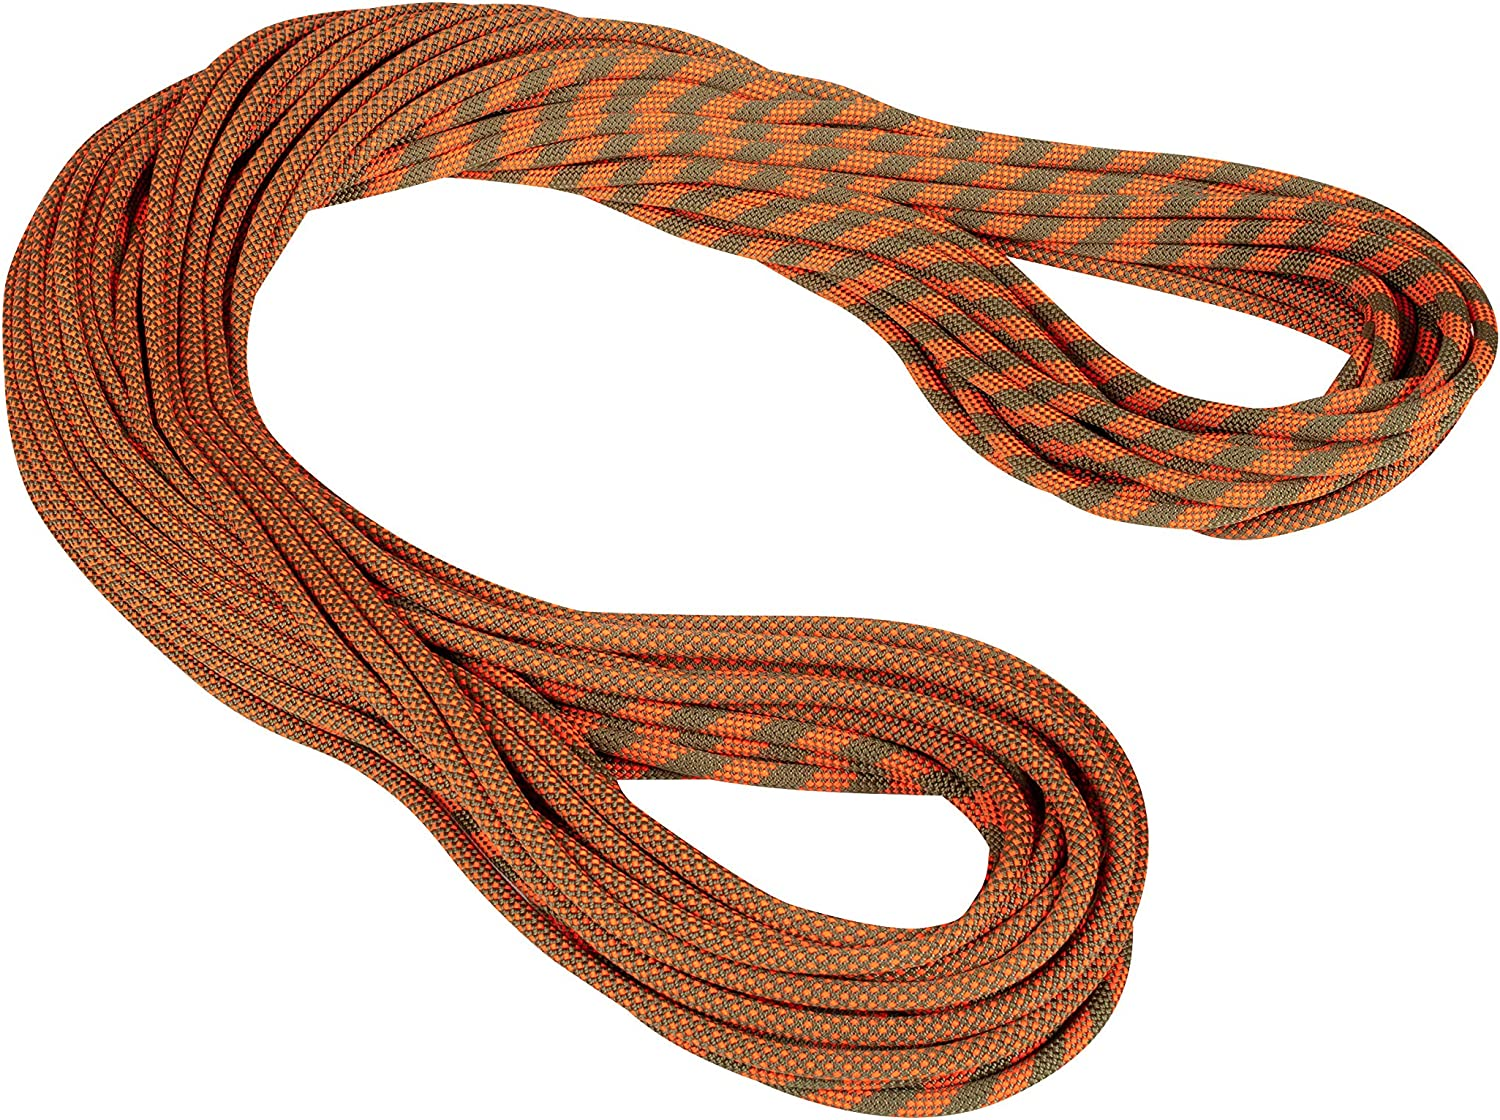 Rope Mammut 9.5 Crag Dry Single Rope Sports & Outdoors pubfactor.ma